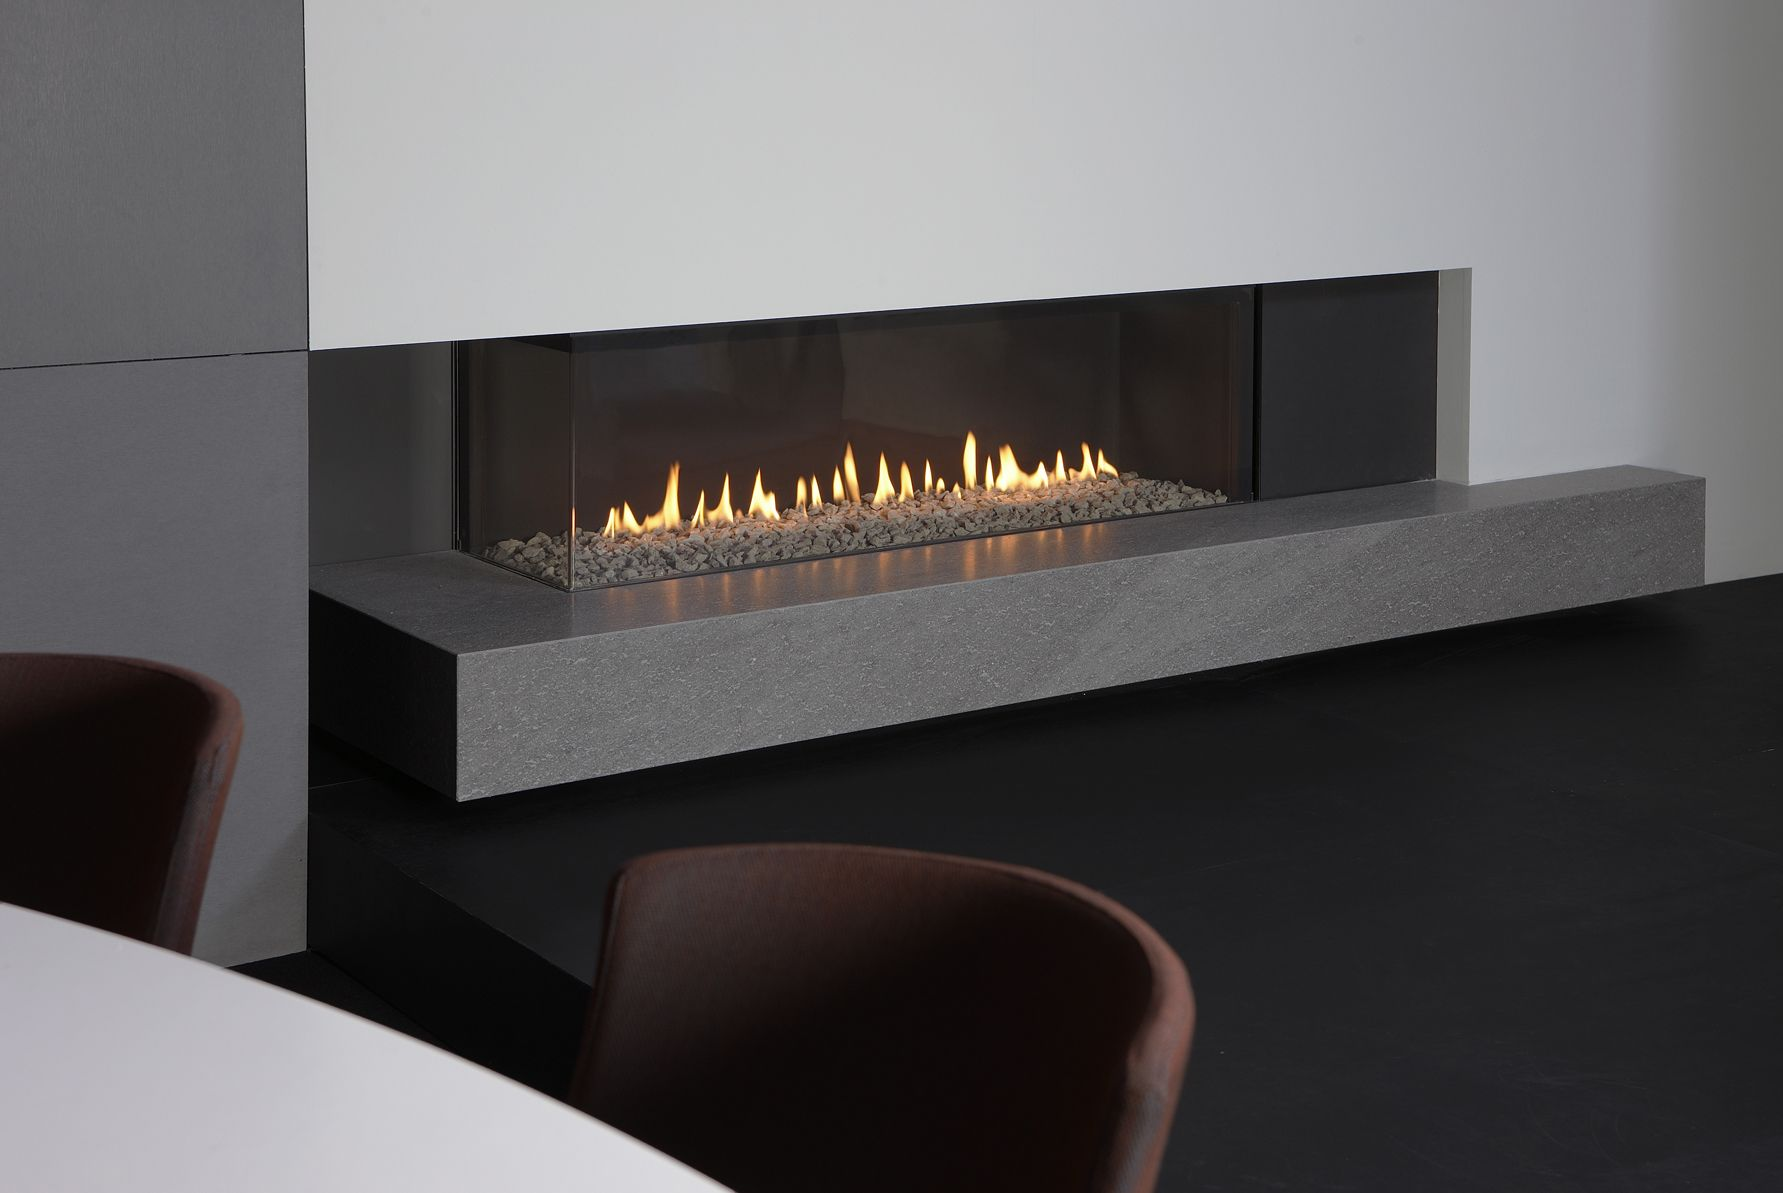 Cheminee Angle Ethanol Foyer Gaz Unique Metalfire Pinterest Foyers Et Angles